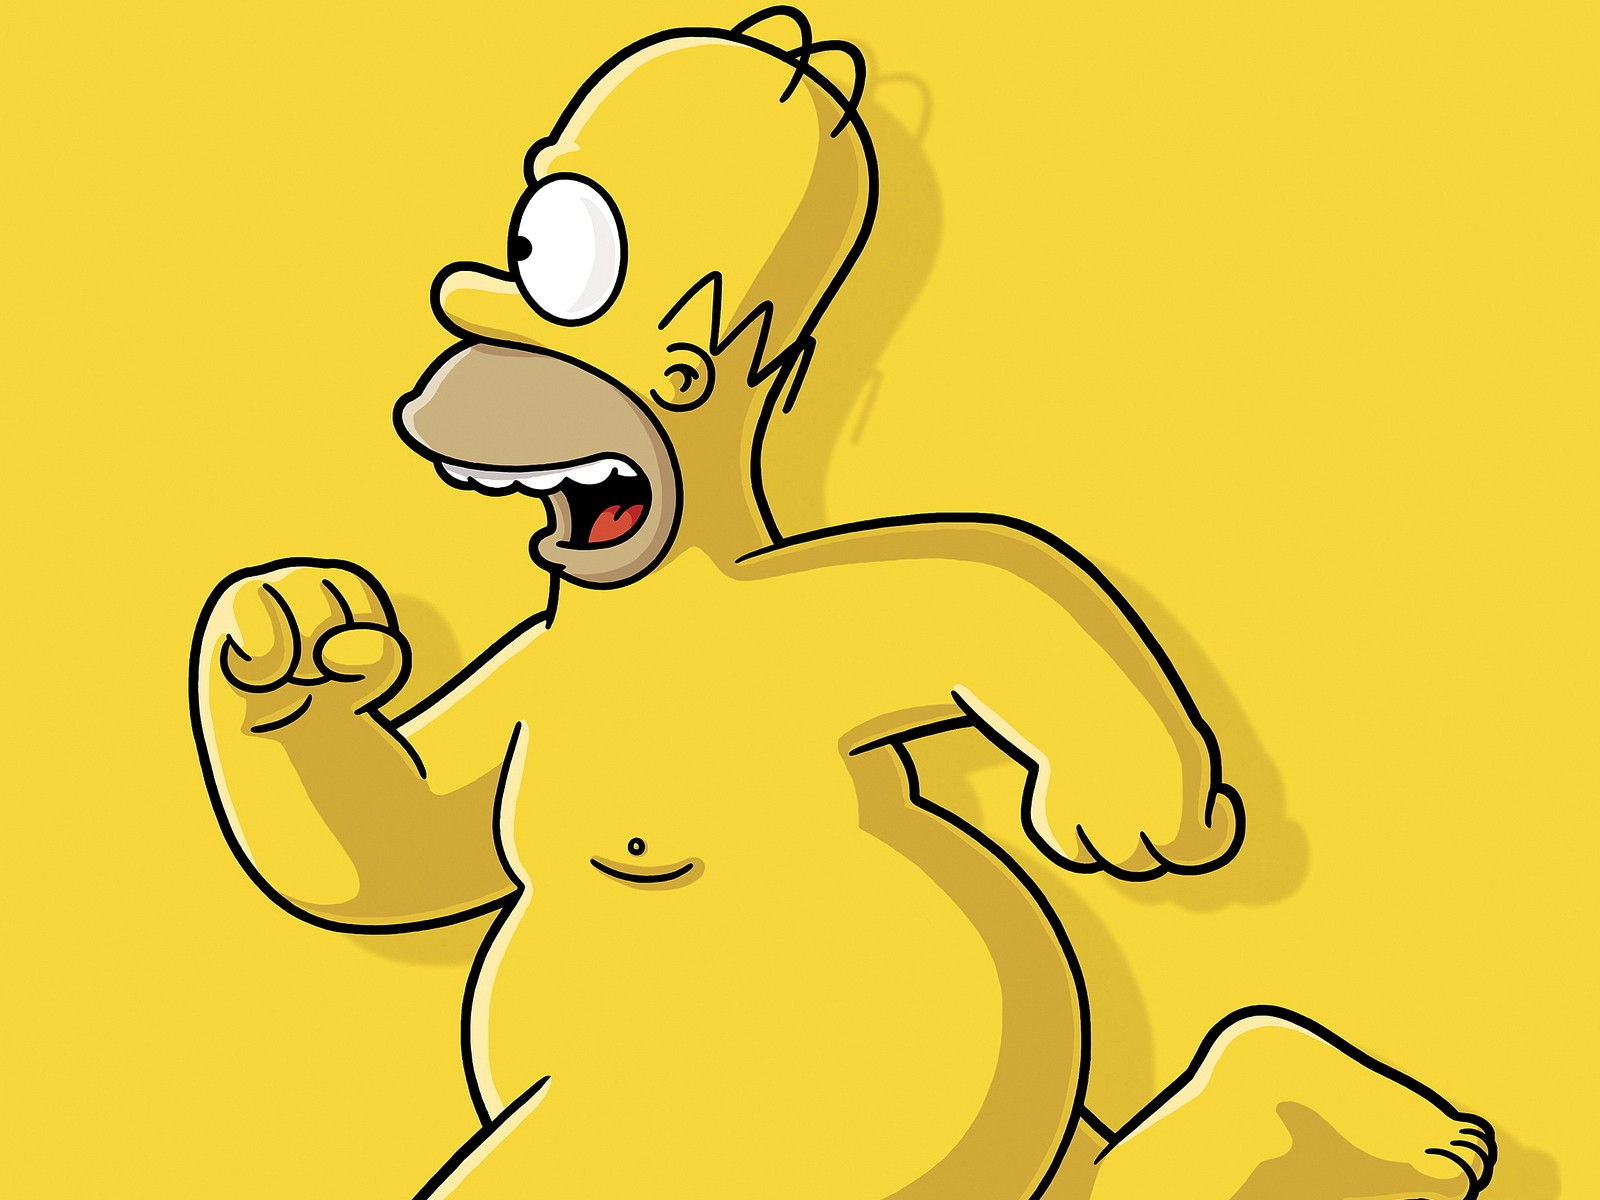 Homer Simpson The Simpsons nude